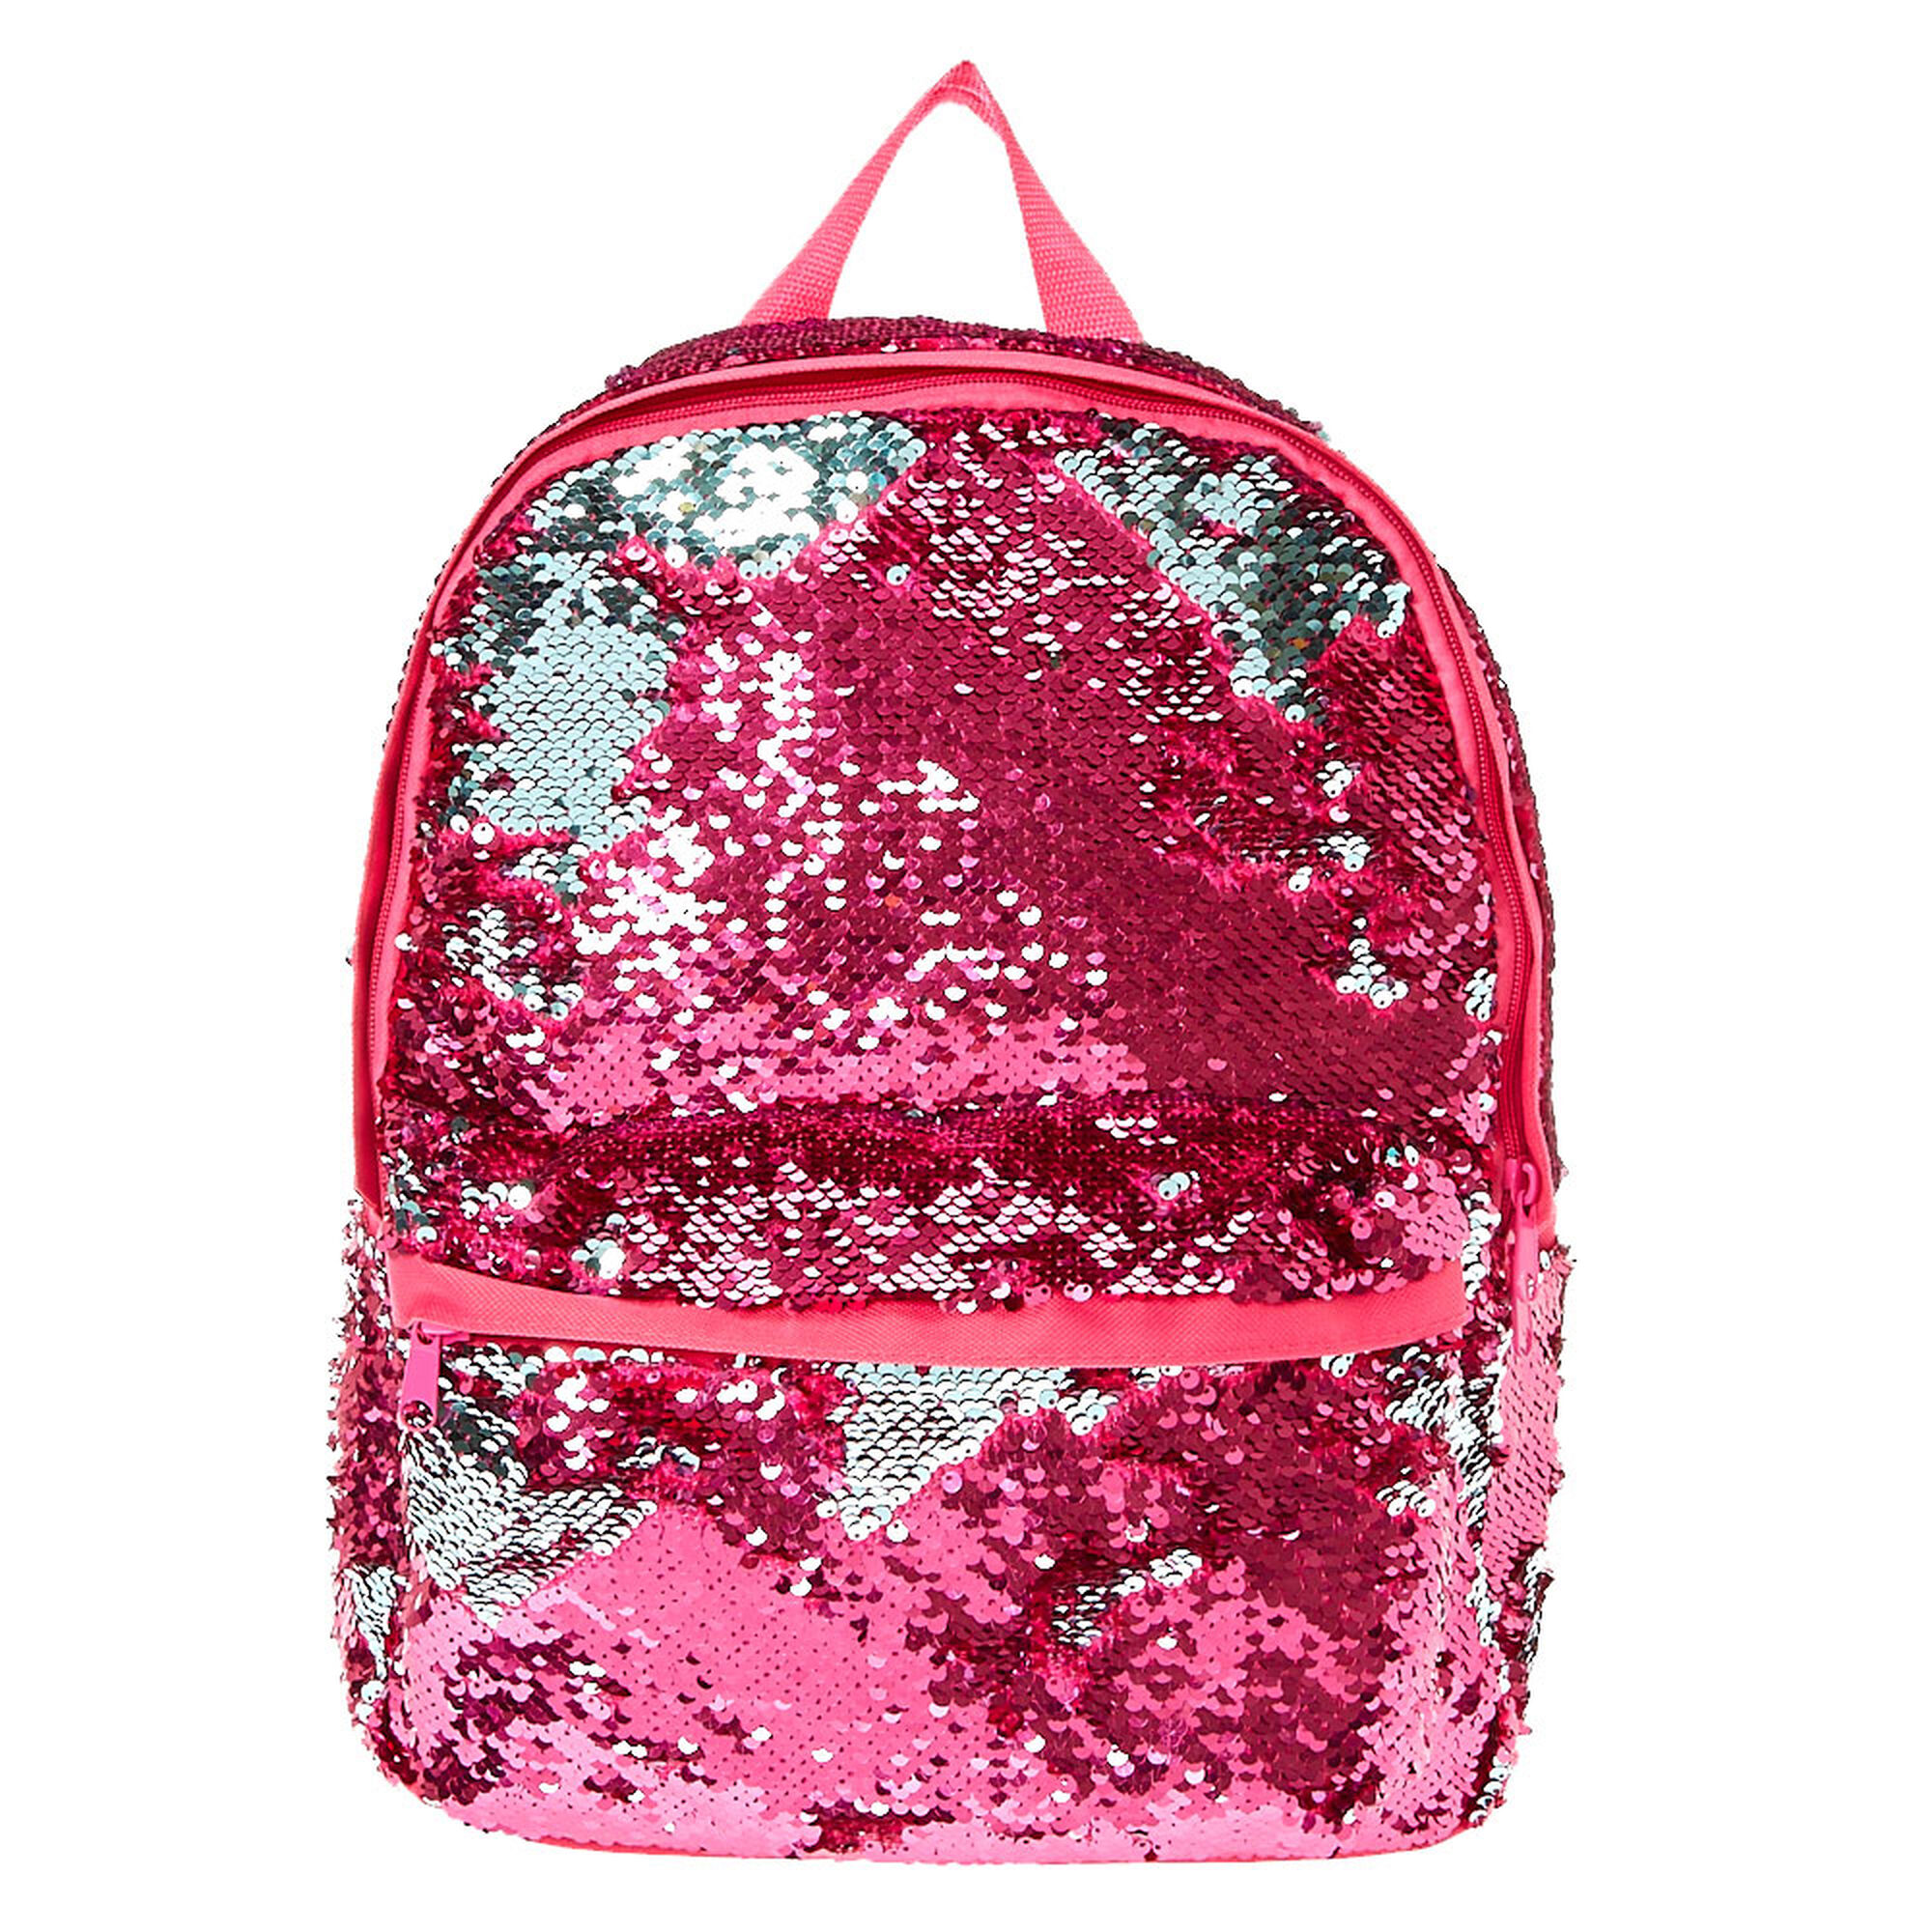 8b34b179c7ac Amazon.com  pink sequin backpack